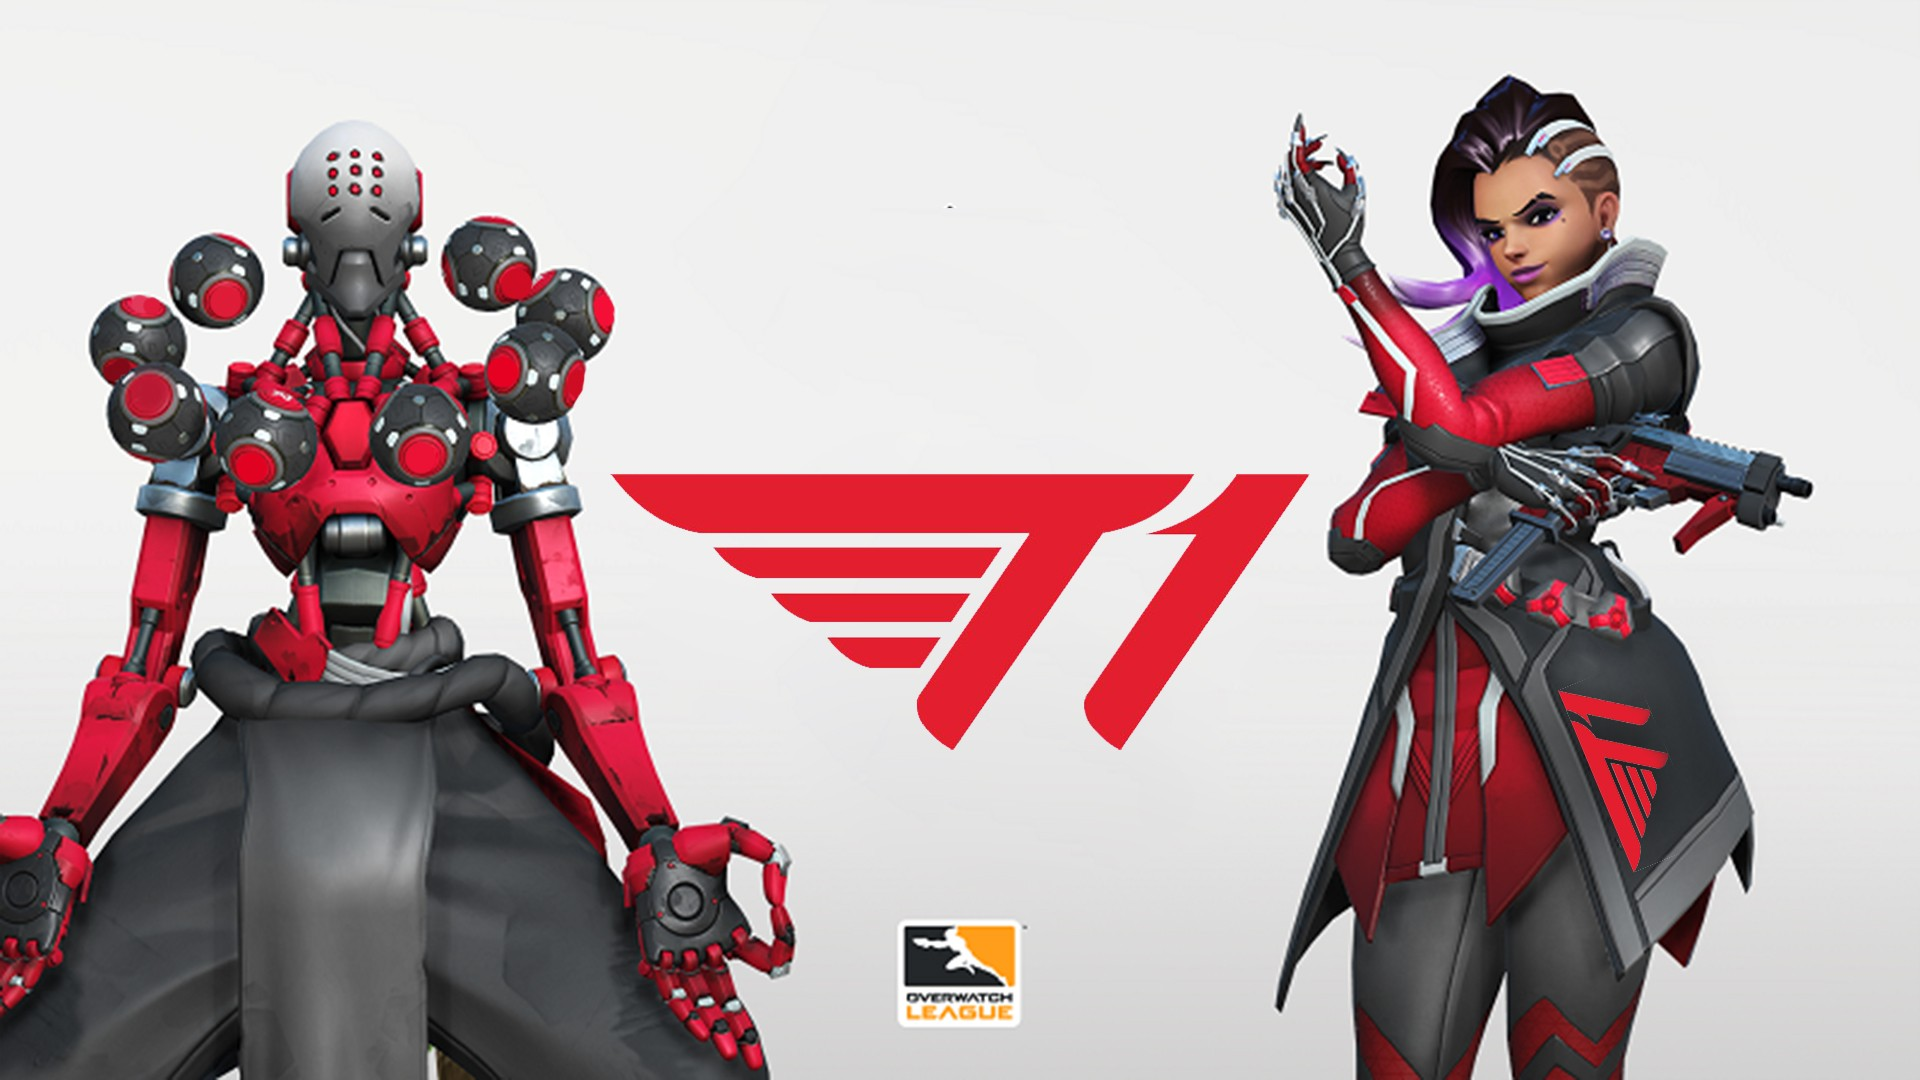 New Overwatch Skins 2020.League Of Legends T1 Will Participate In The Overwatch